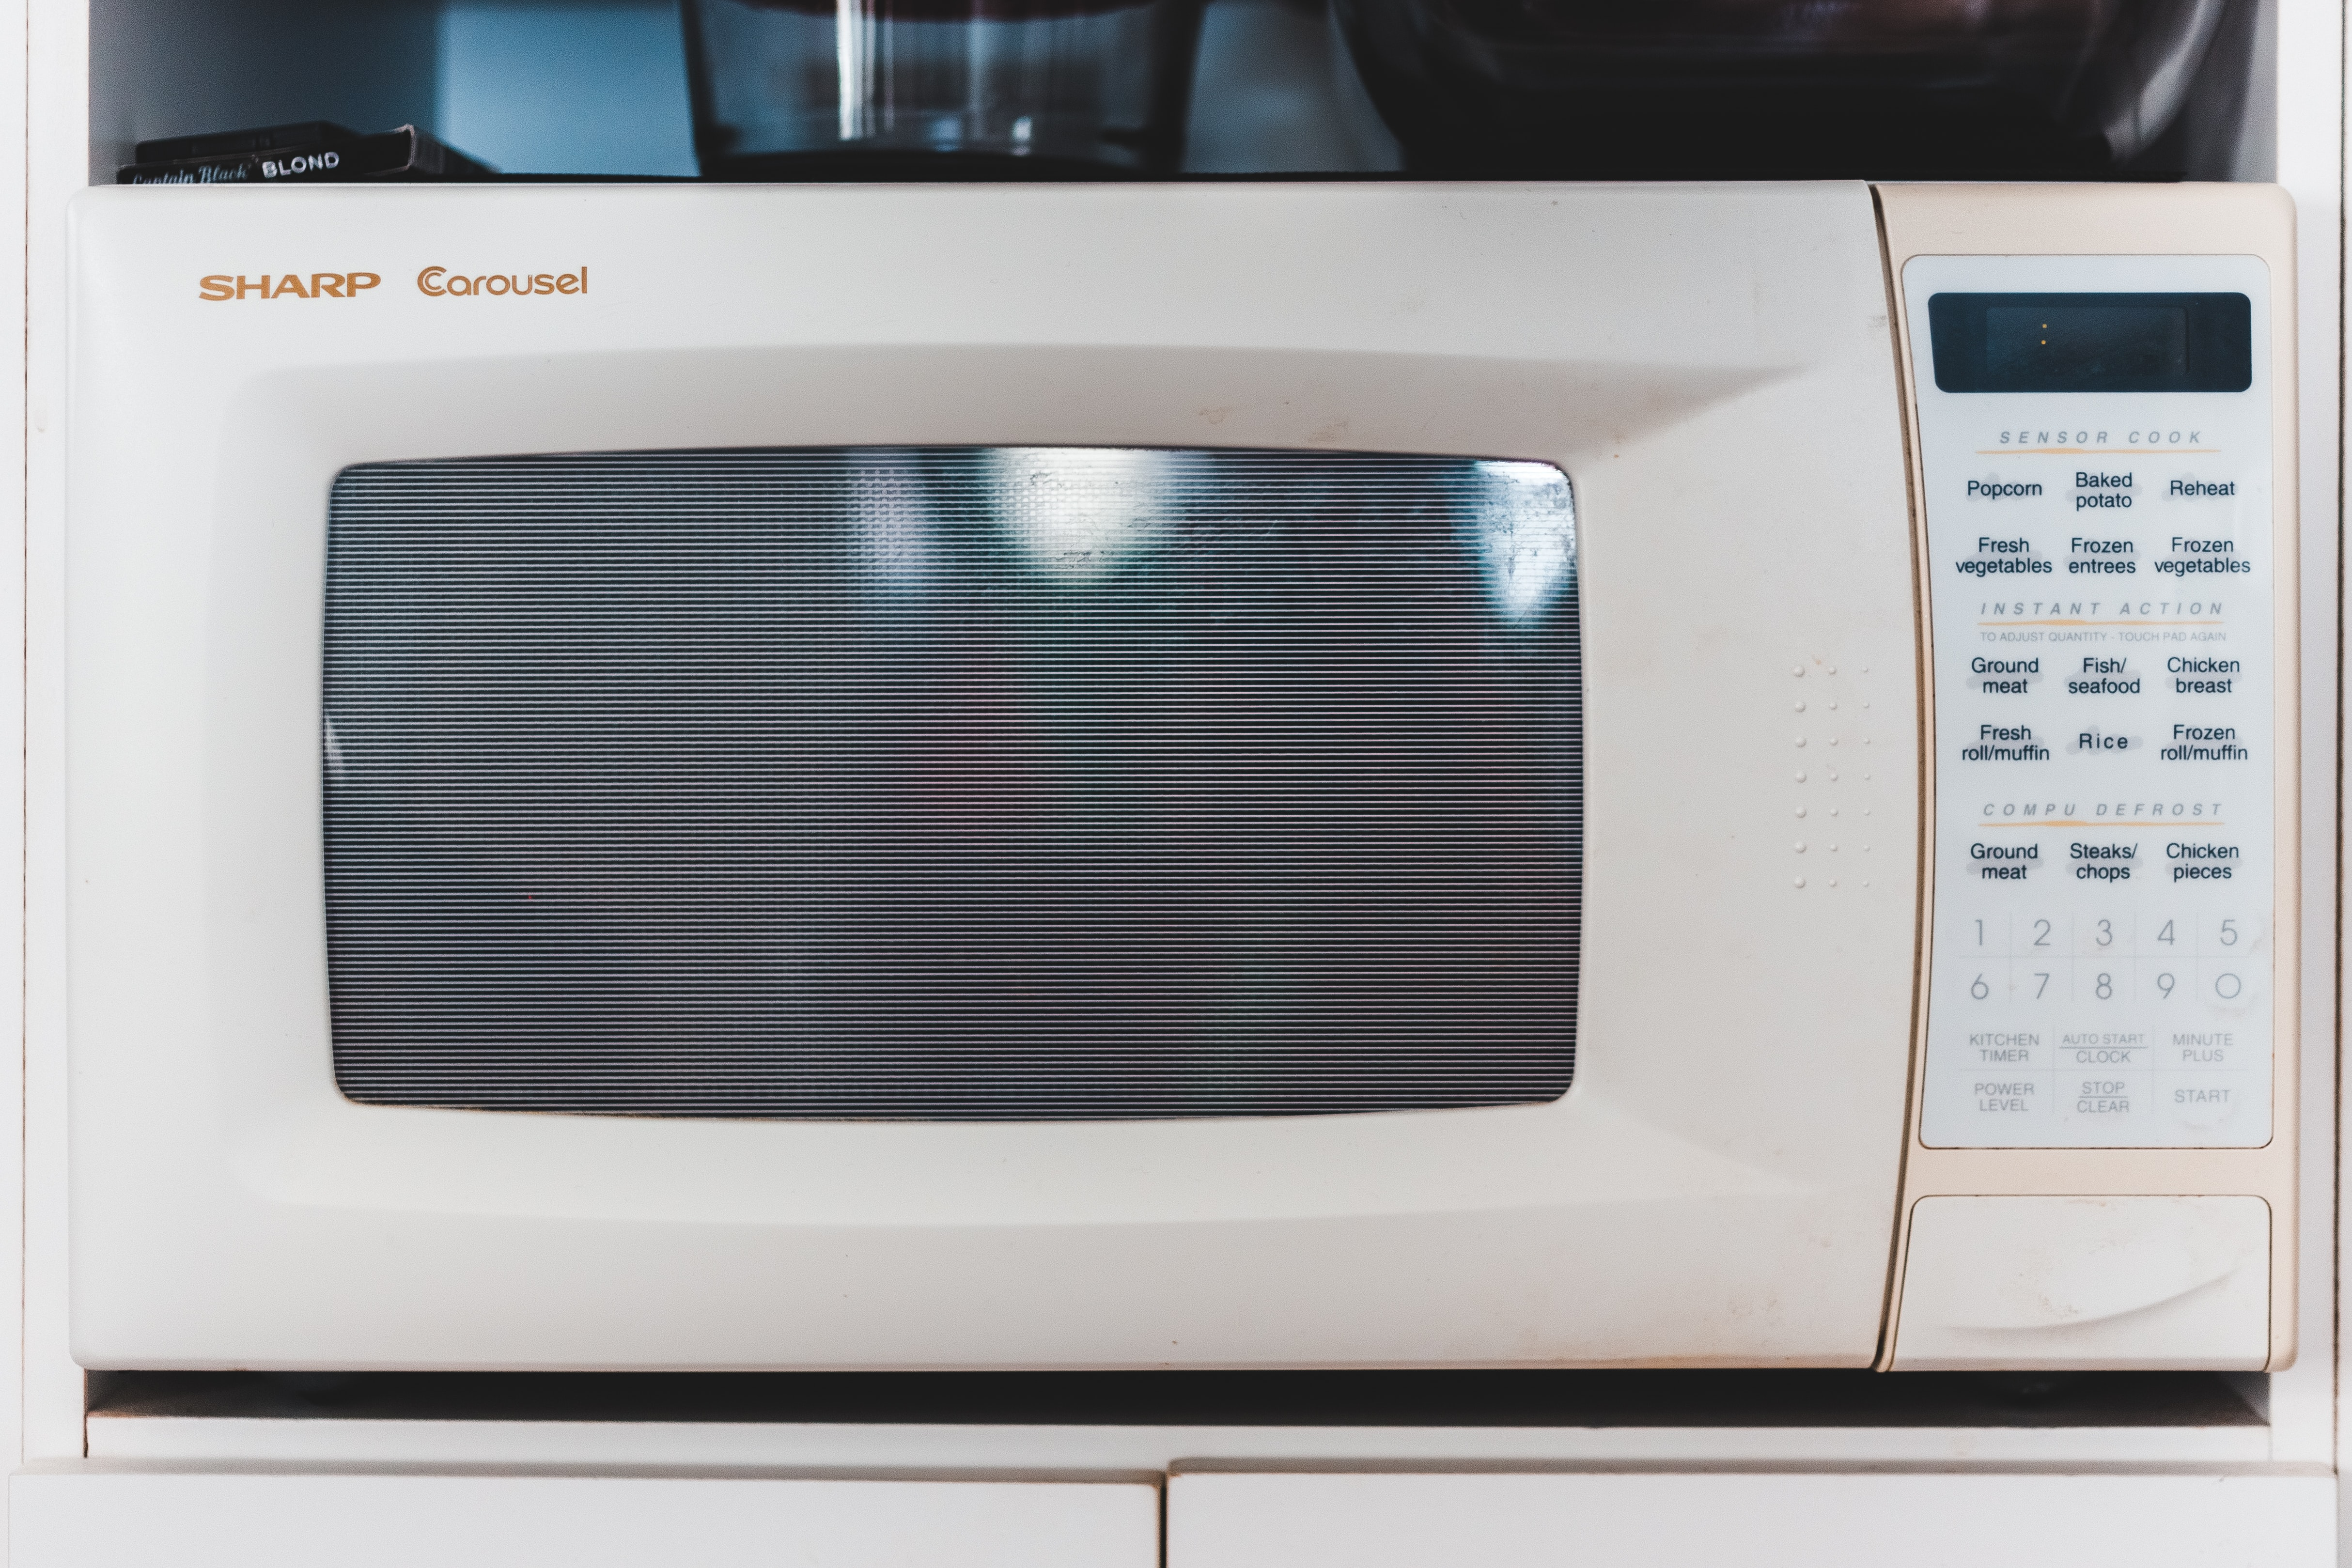 Microwave boiling